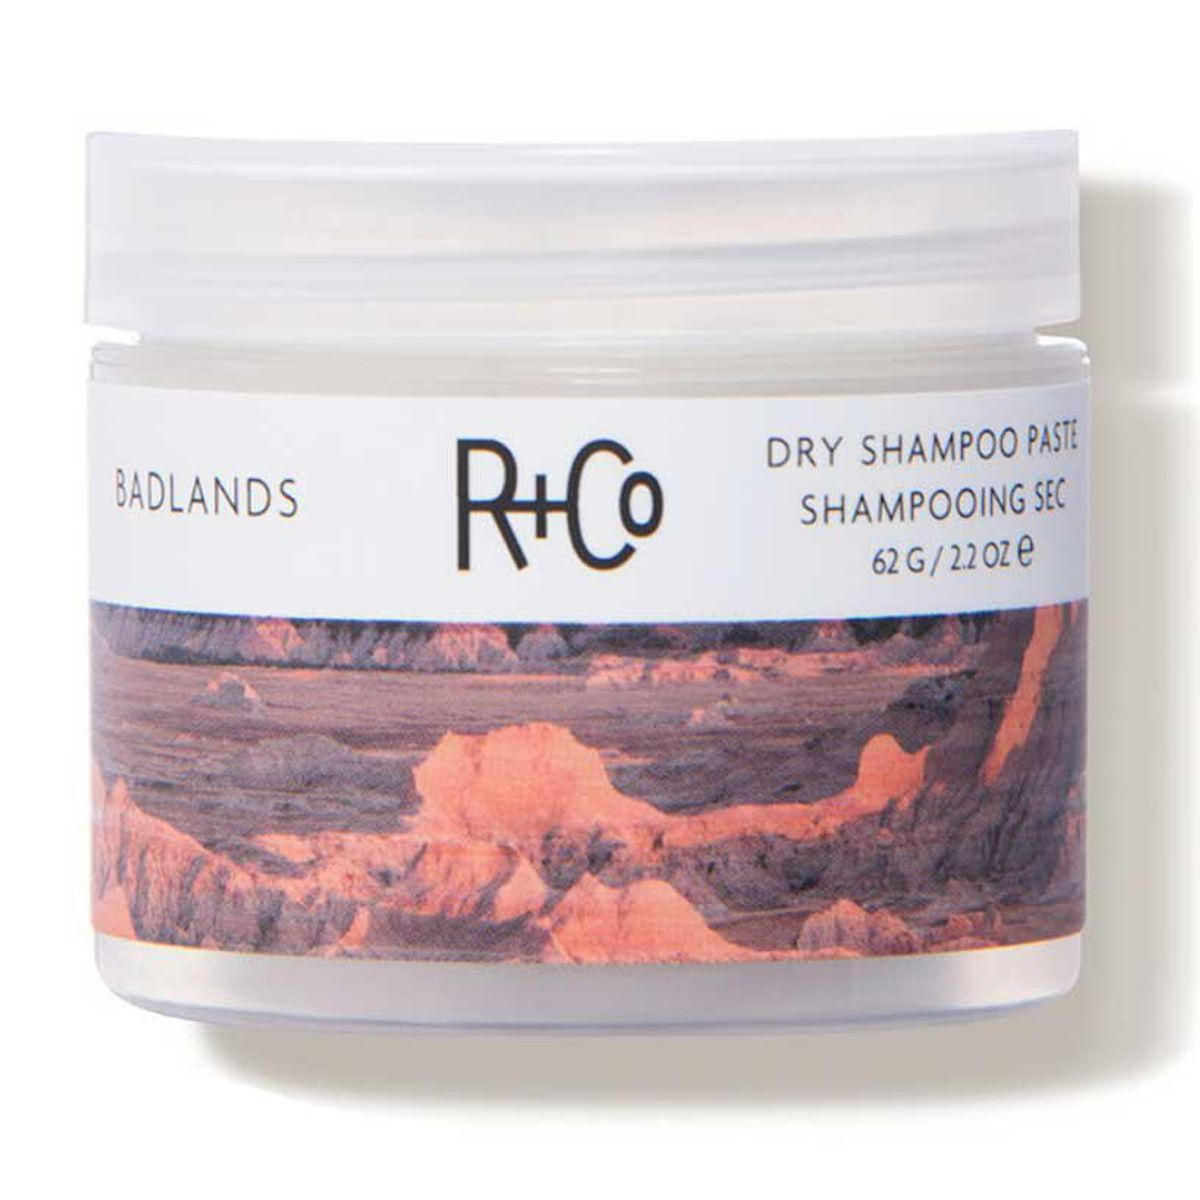 r and co badlands dry shampoo paste